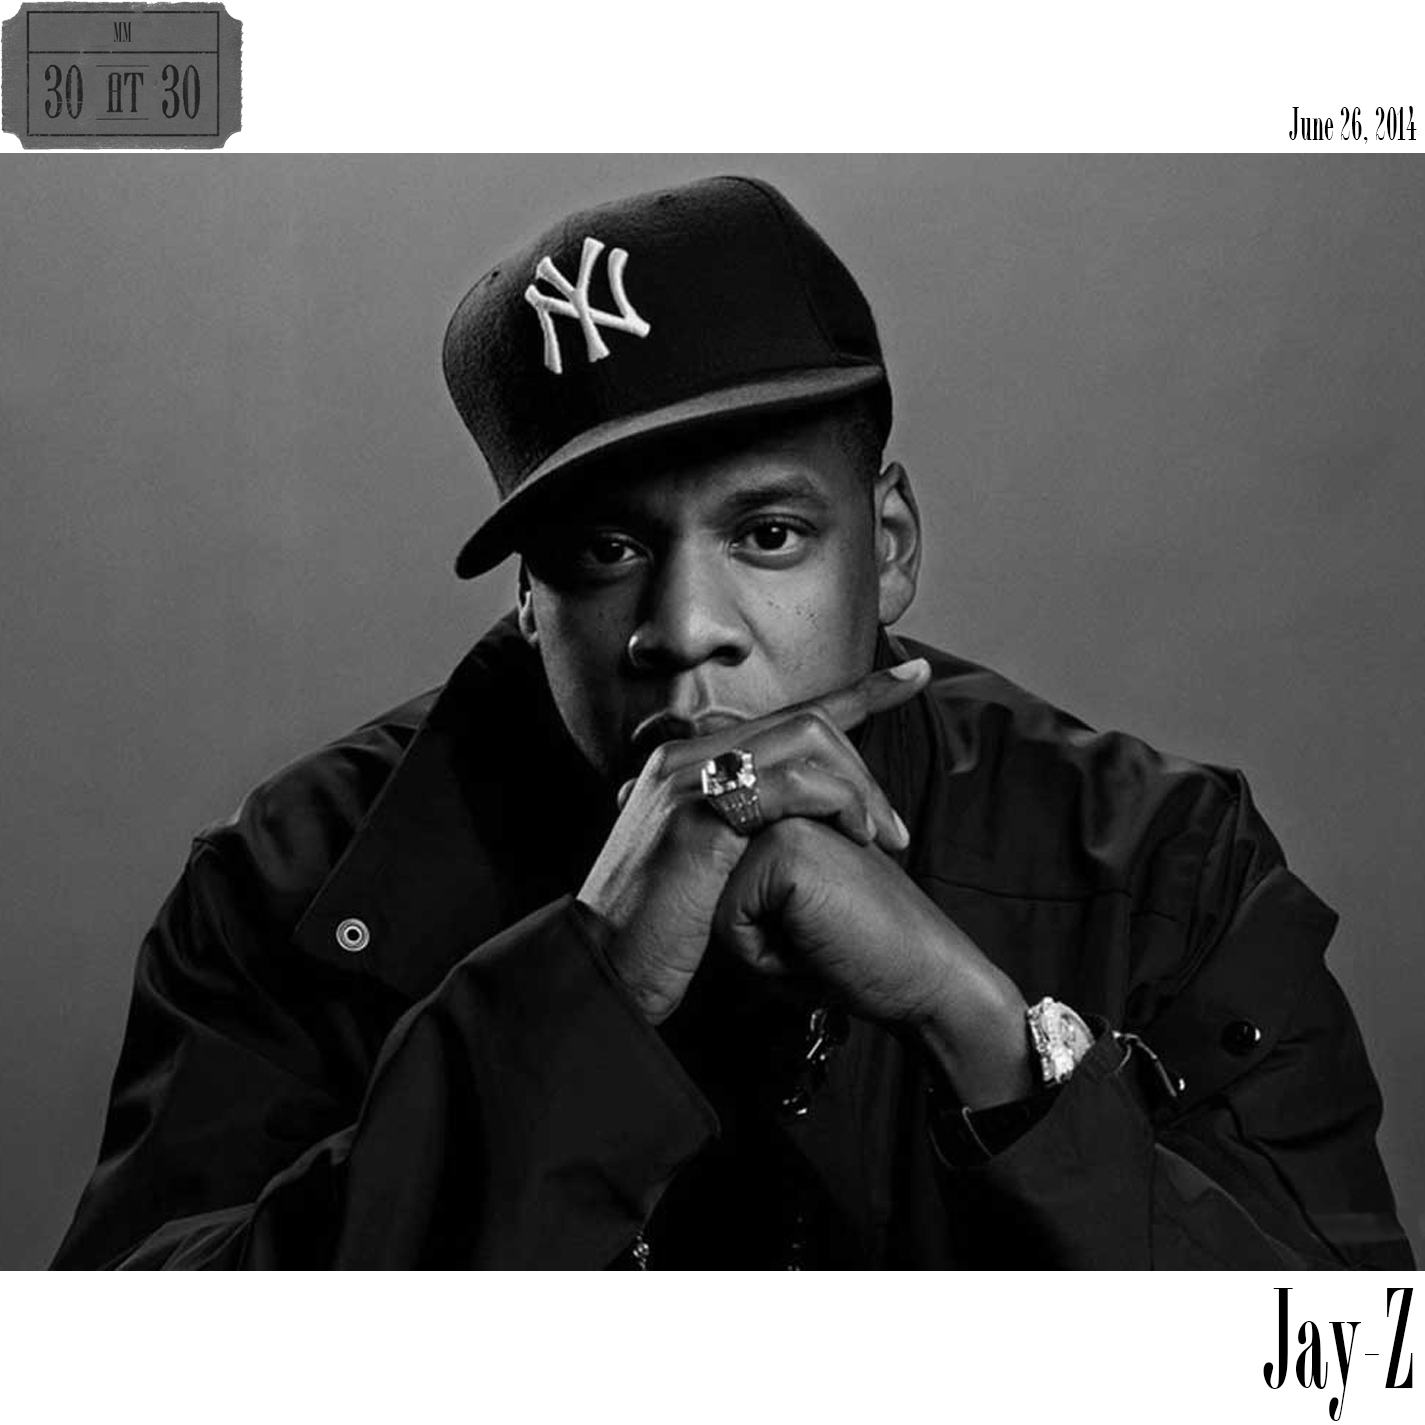 13 jay z matthubert when jay z was announced as the executive producer of the soundtrack for the 2013 film version of the great gatsby it made a lot of sense to me malvernweather Gallery